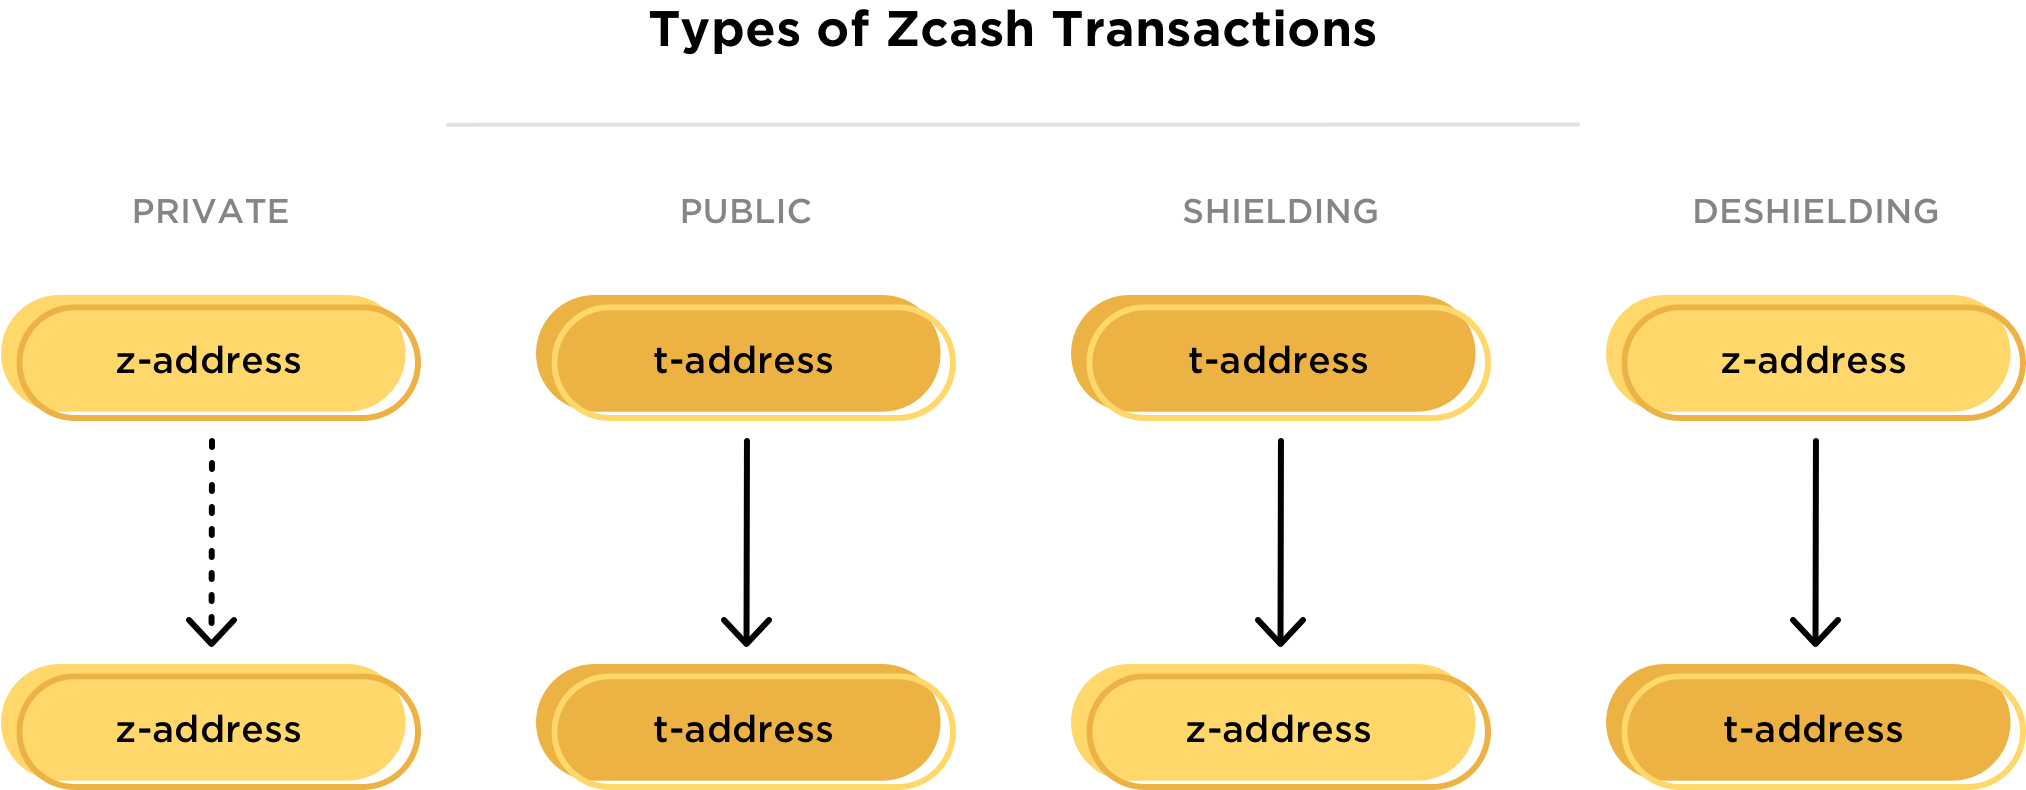 Gemini-Zcash Transaction Types-Blog